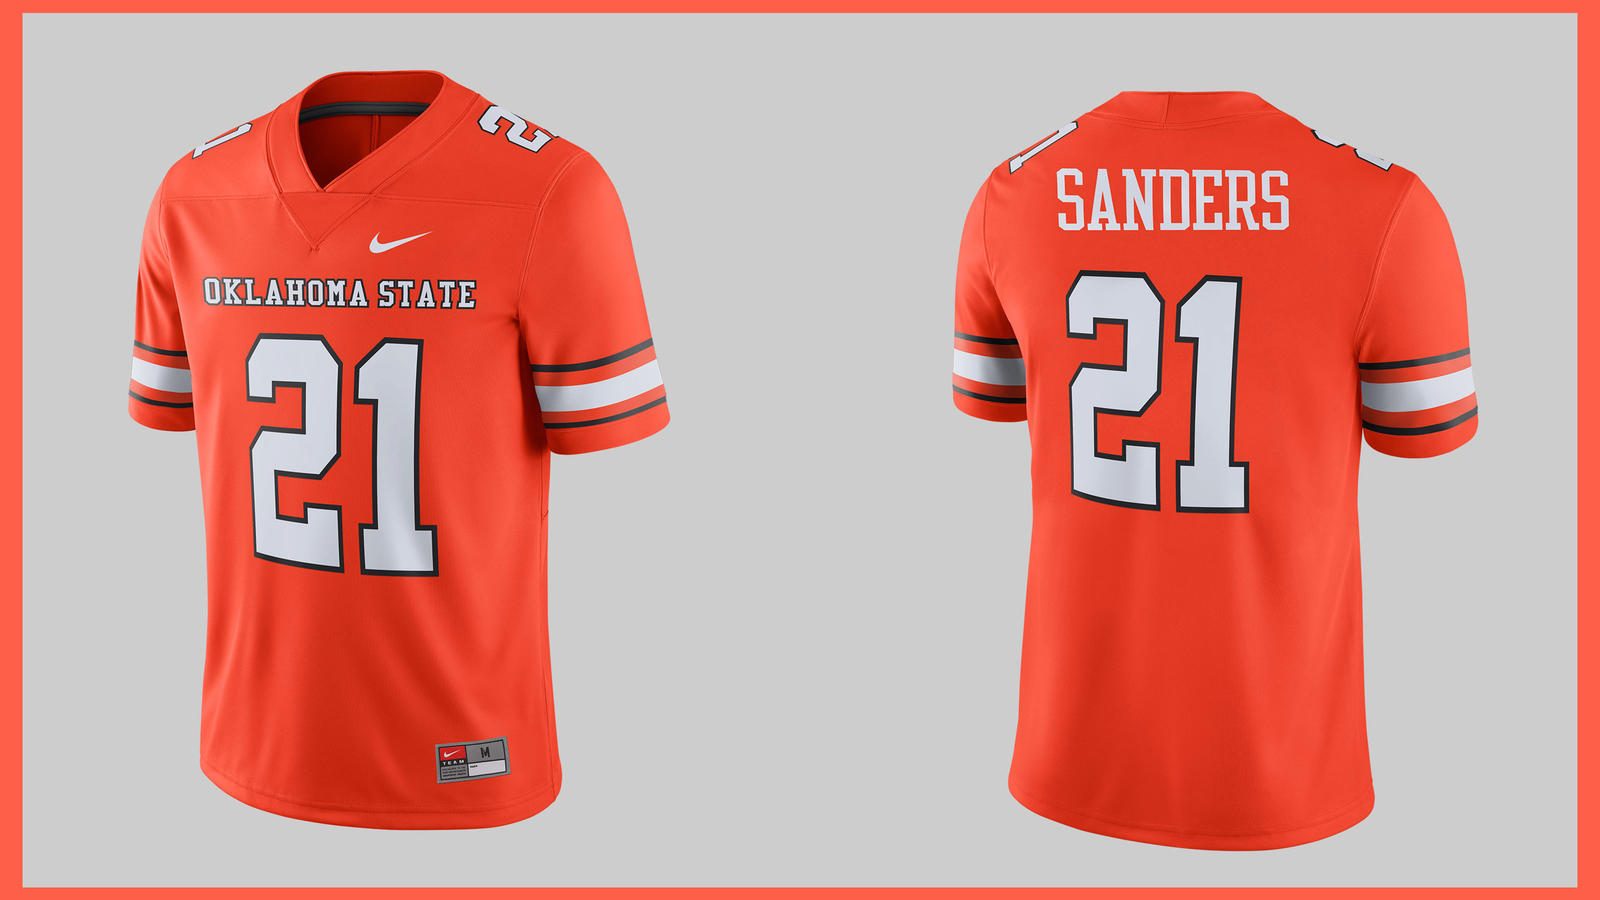 a74dd4faf8ca These Oklahoma State Throwbacks Celebrate Barry Sanders  Heisman Season 0